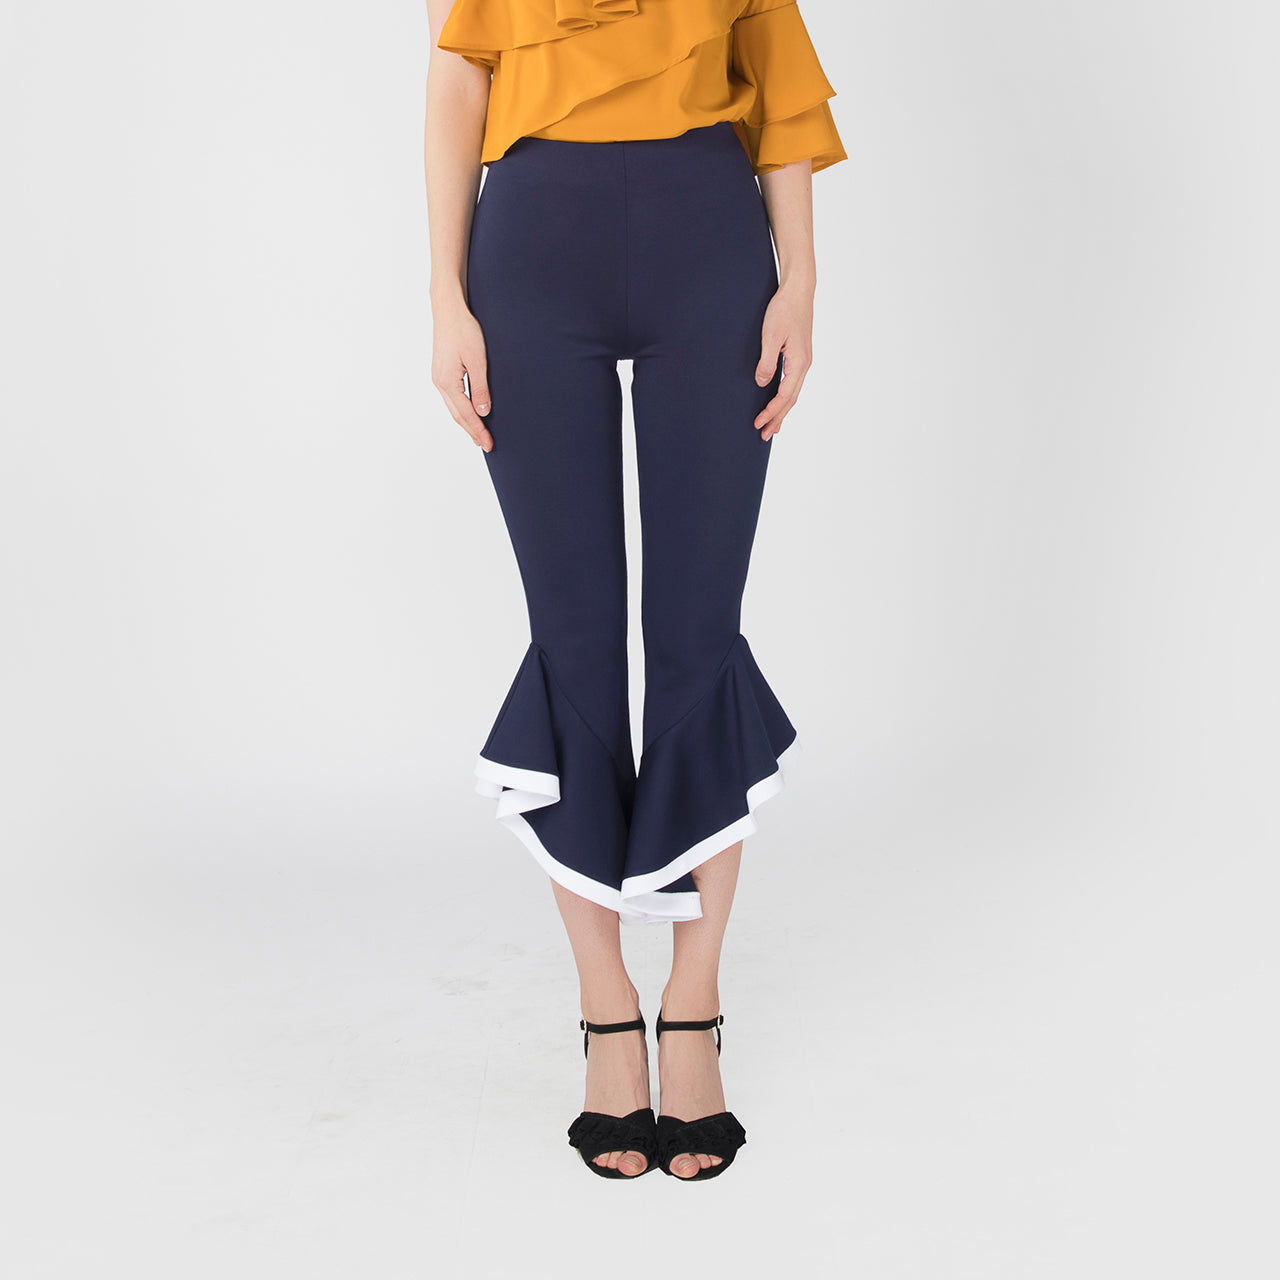 BLUE IRENE PANTS